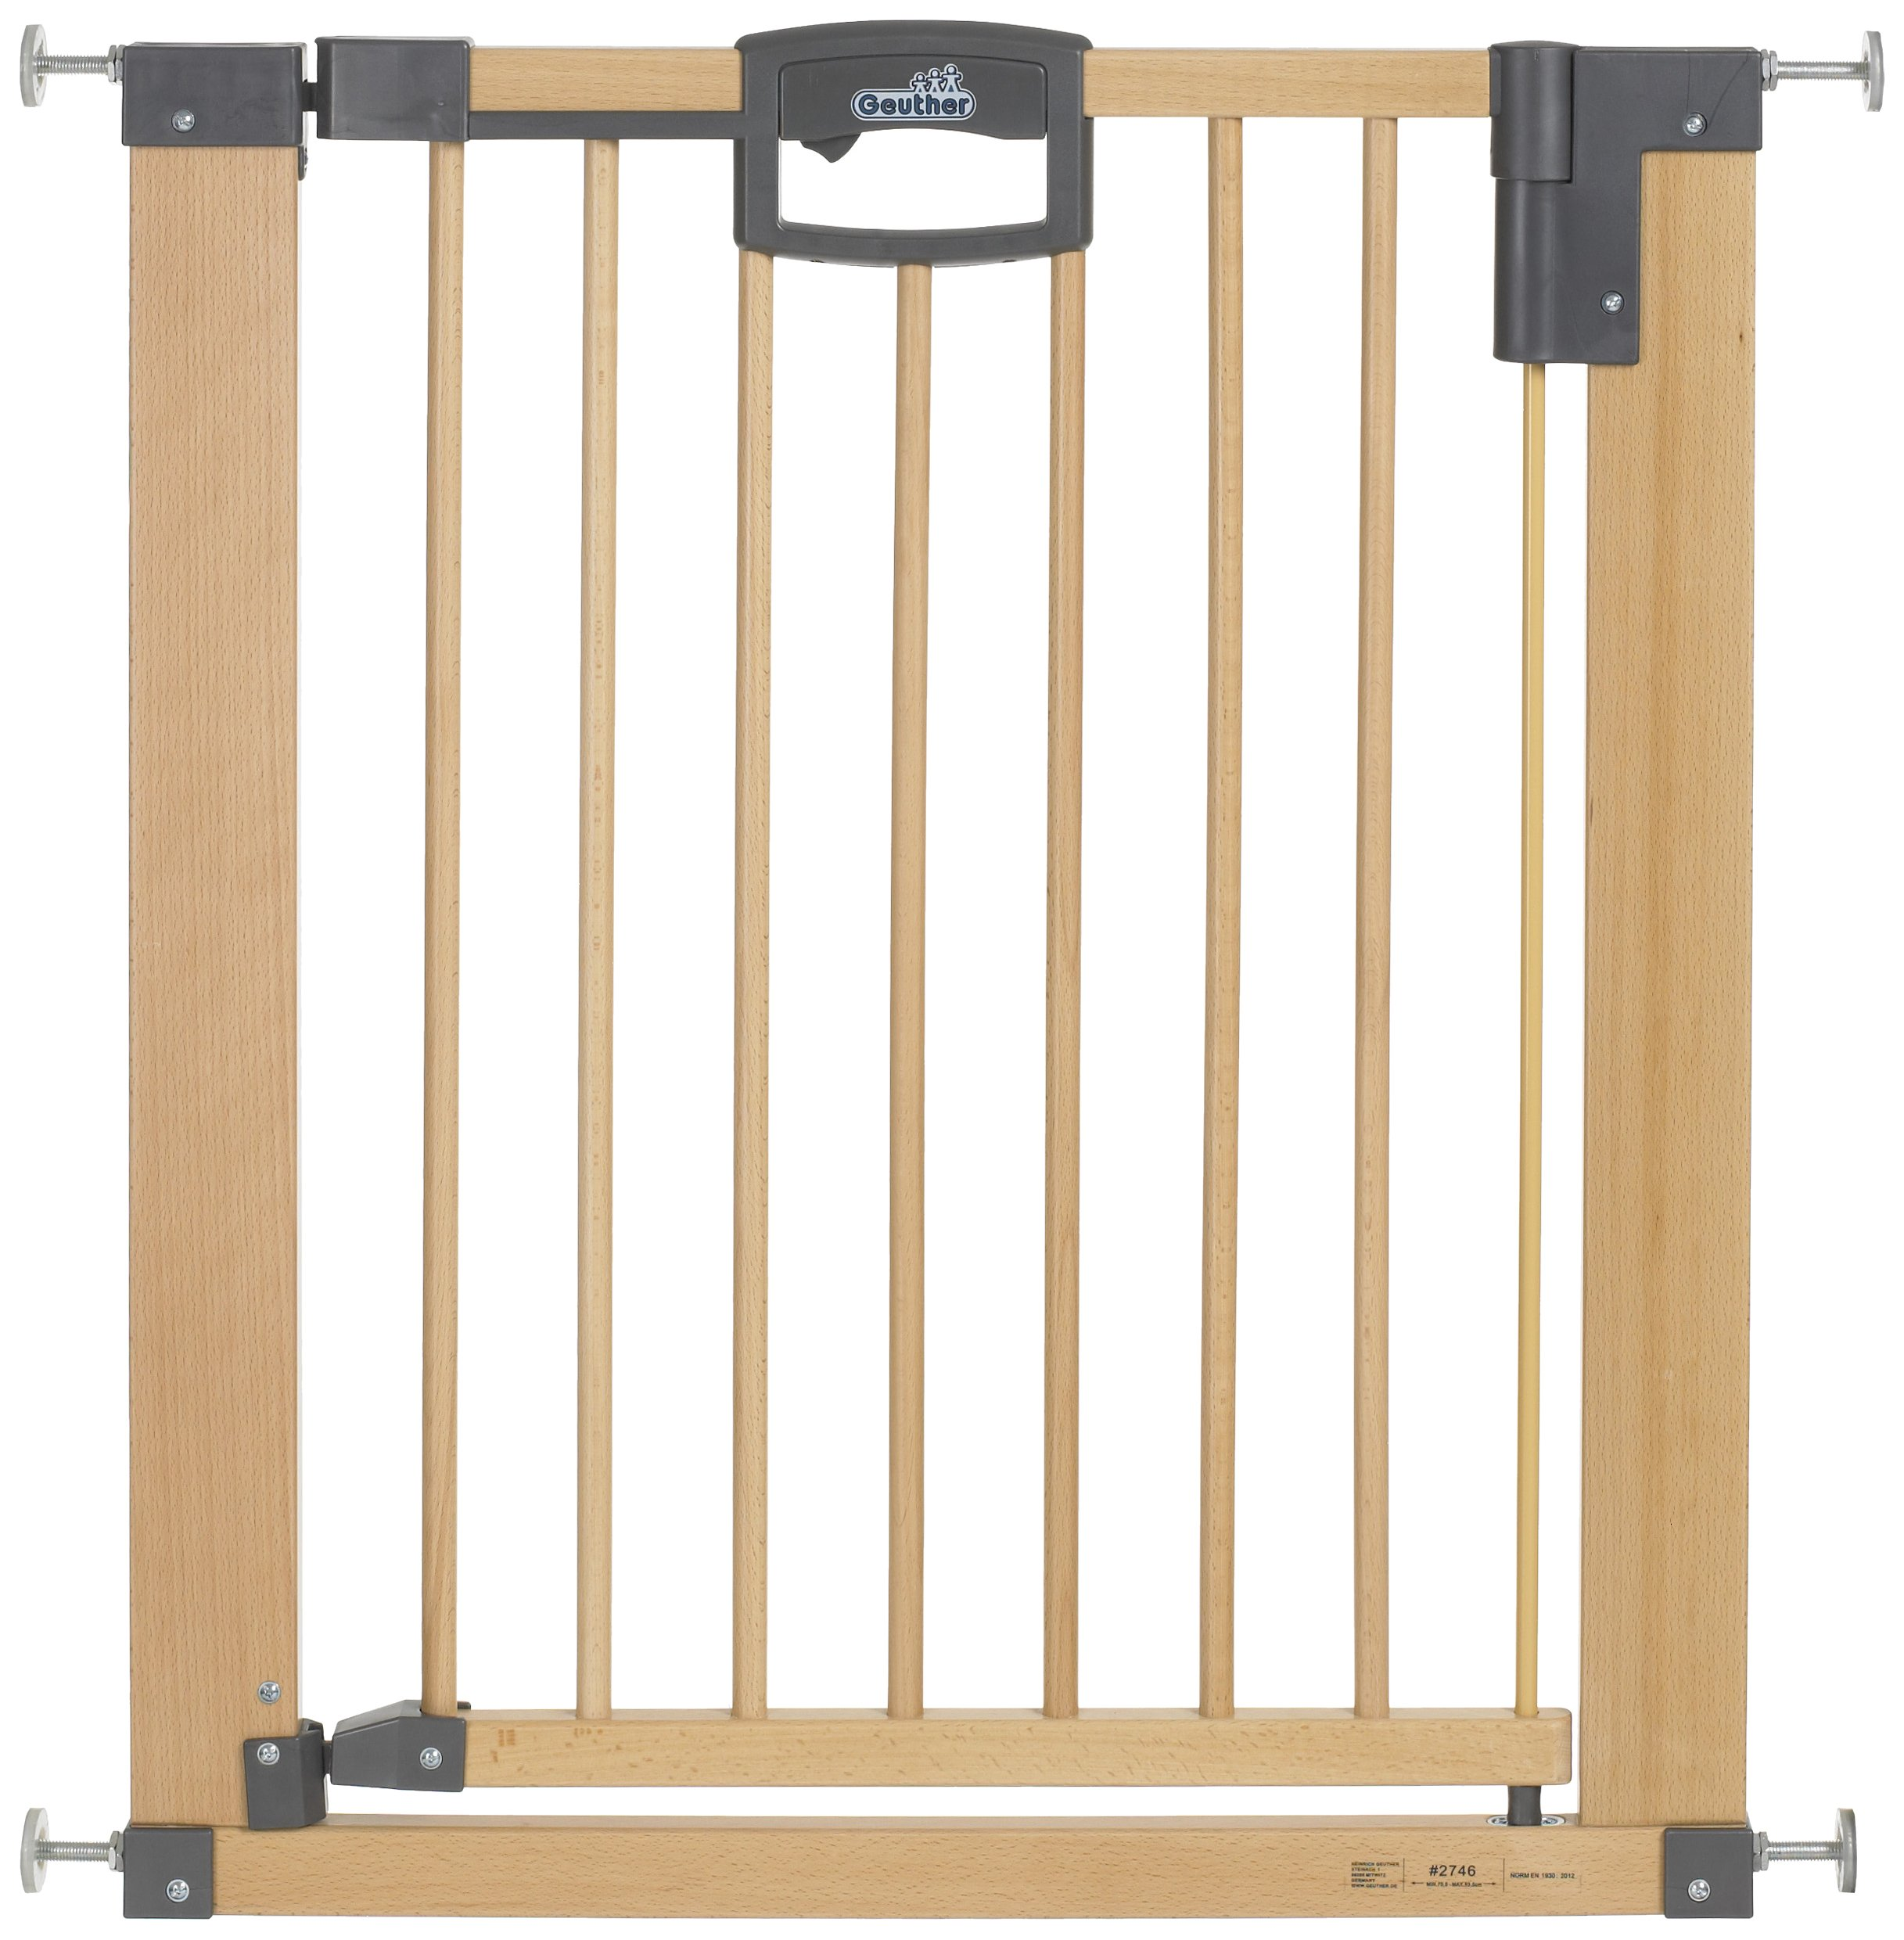 Geuther Door Safety Gate Easy Lock (Wood, Range of Adjustment 75.5 - 83.5cm)  Solid Beech Wood Door gate utilising easylock design No Drilling required Dual lock feature - impossible for toddlers to open yet simple for adults. 1